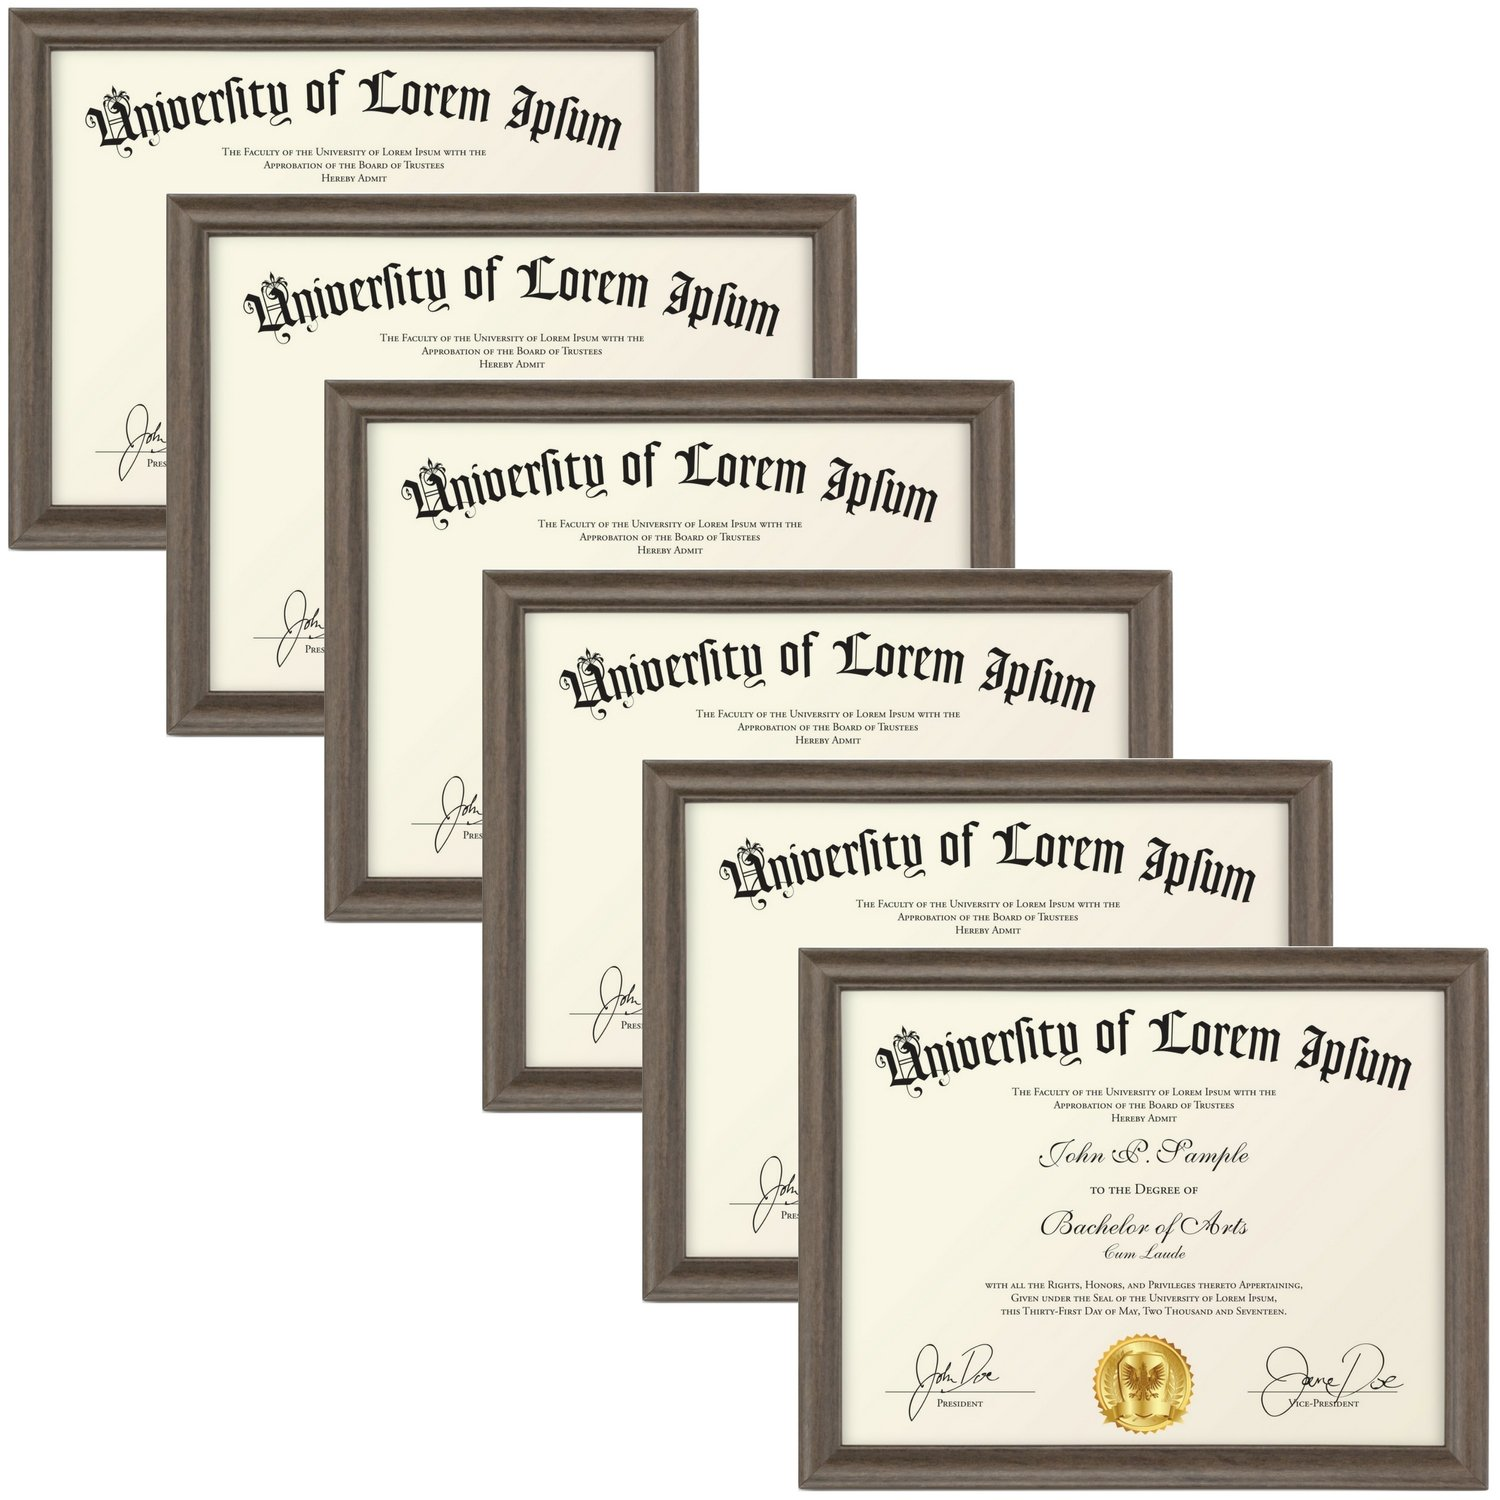 Icona Bay 8.5x11 Document Frame (6-Pack, Matte Brown) Wood Finish Picture Frame, Wall or Table Top, for Diploma Photo License Certificate, Landscape as 11x8.5 or Portrait, Lakeland Collection